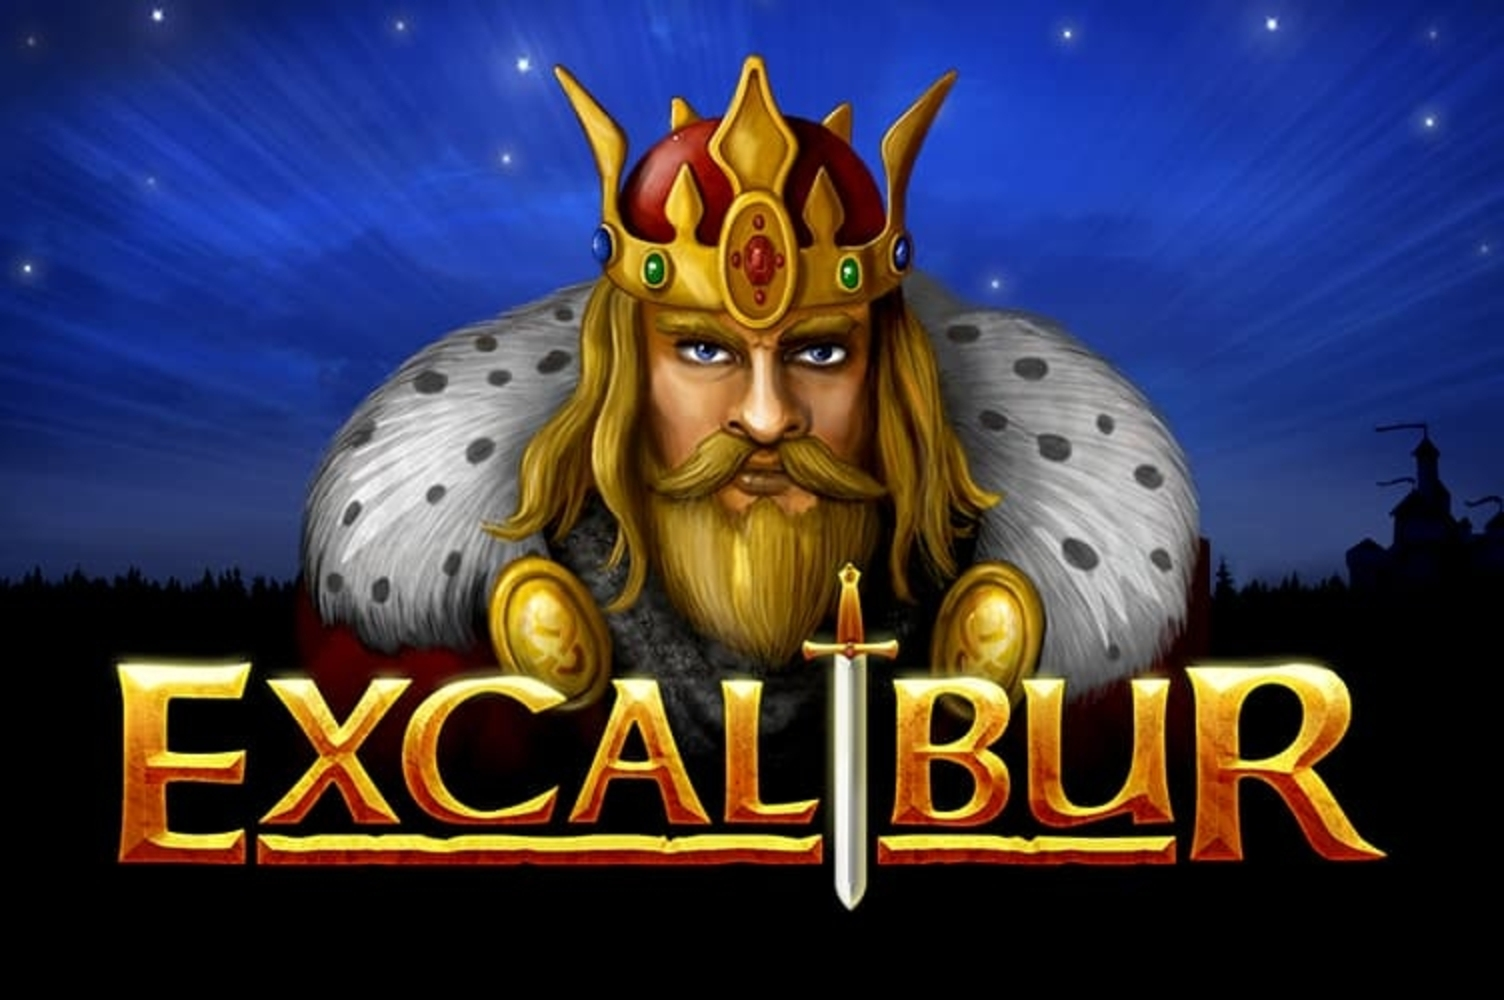 Excalibur Online Slot Demo Game by NetEnt